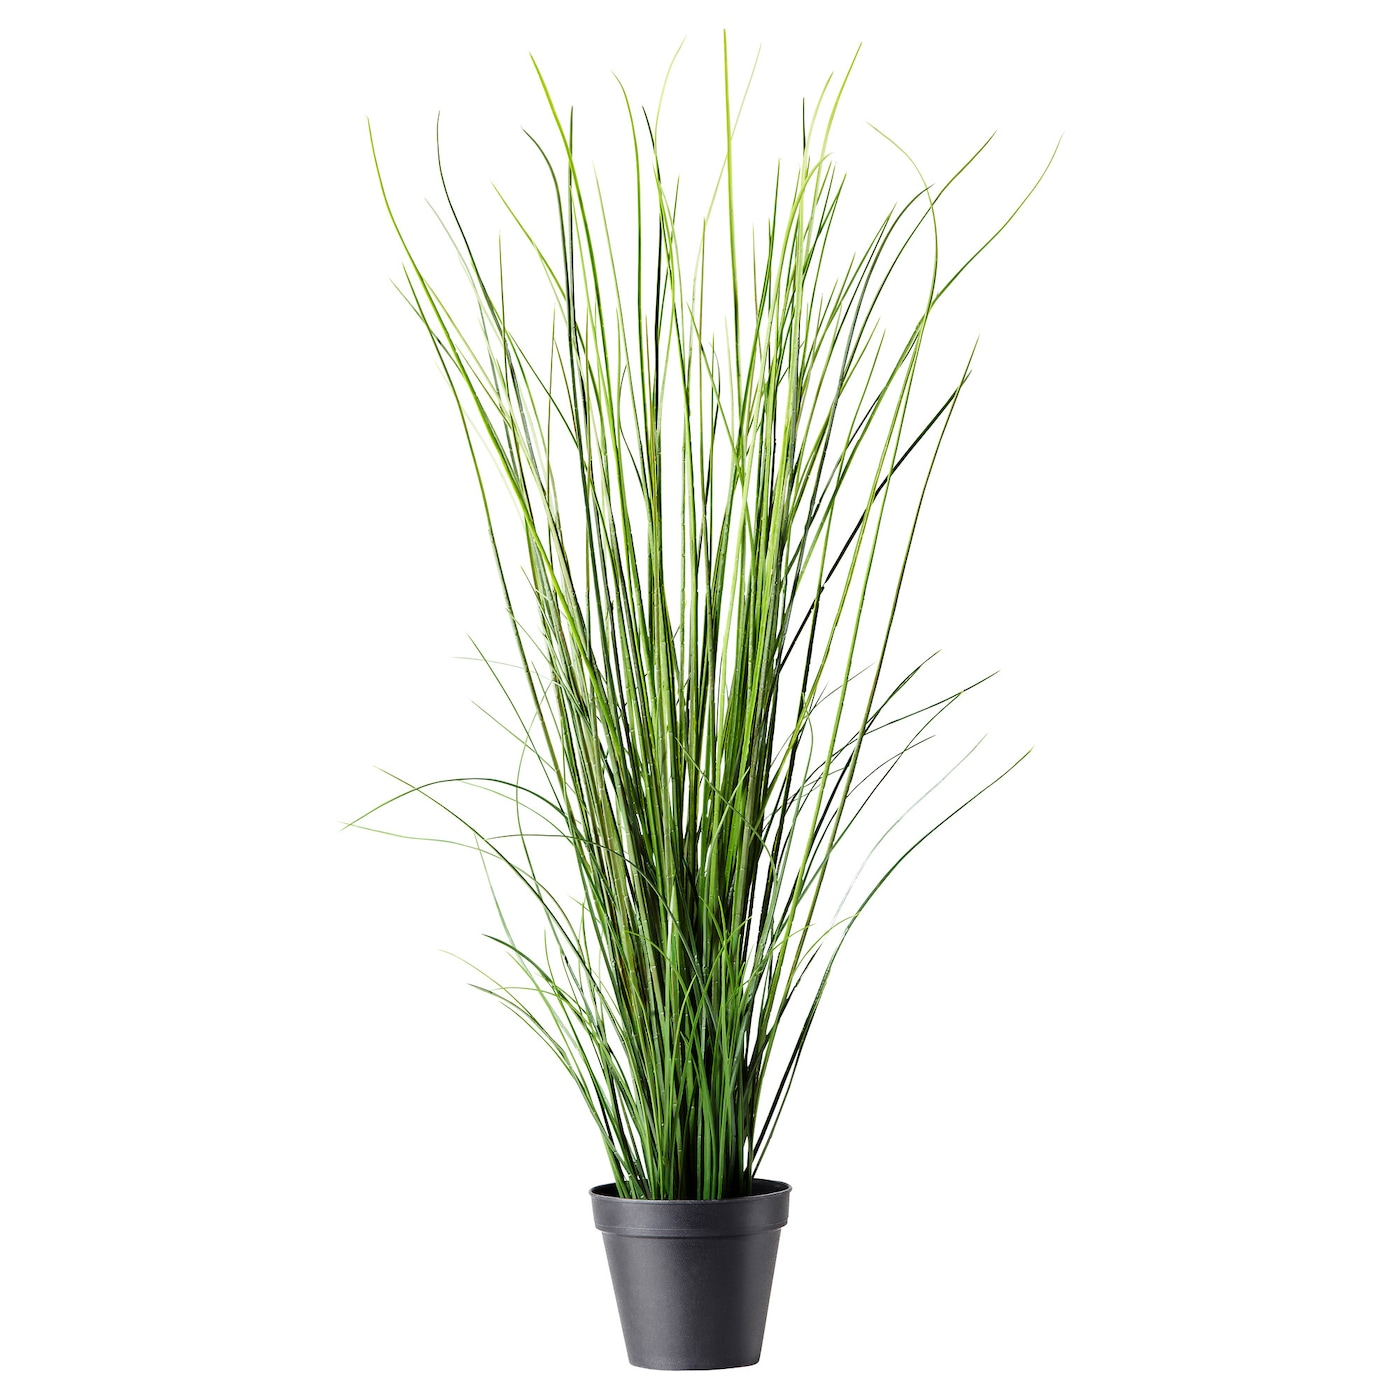 ikea fejka artificial potted plant - Tall Potted Plants